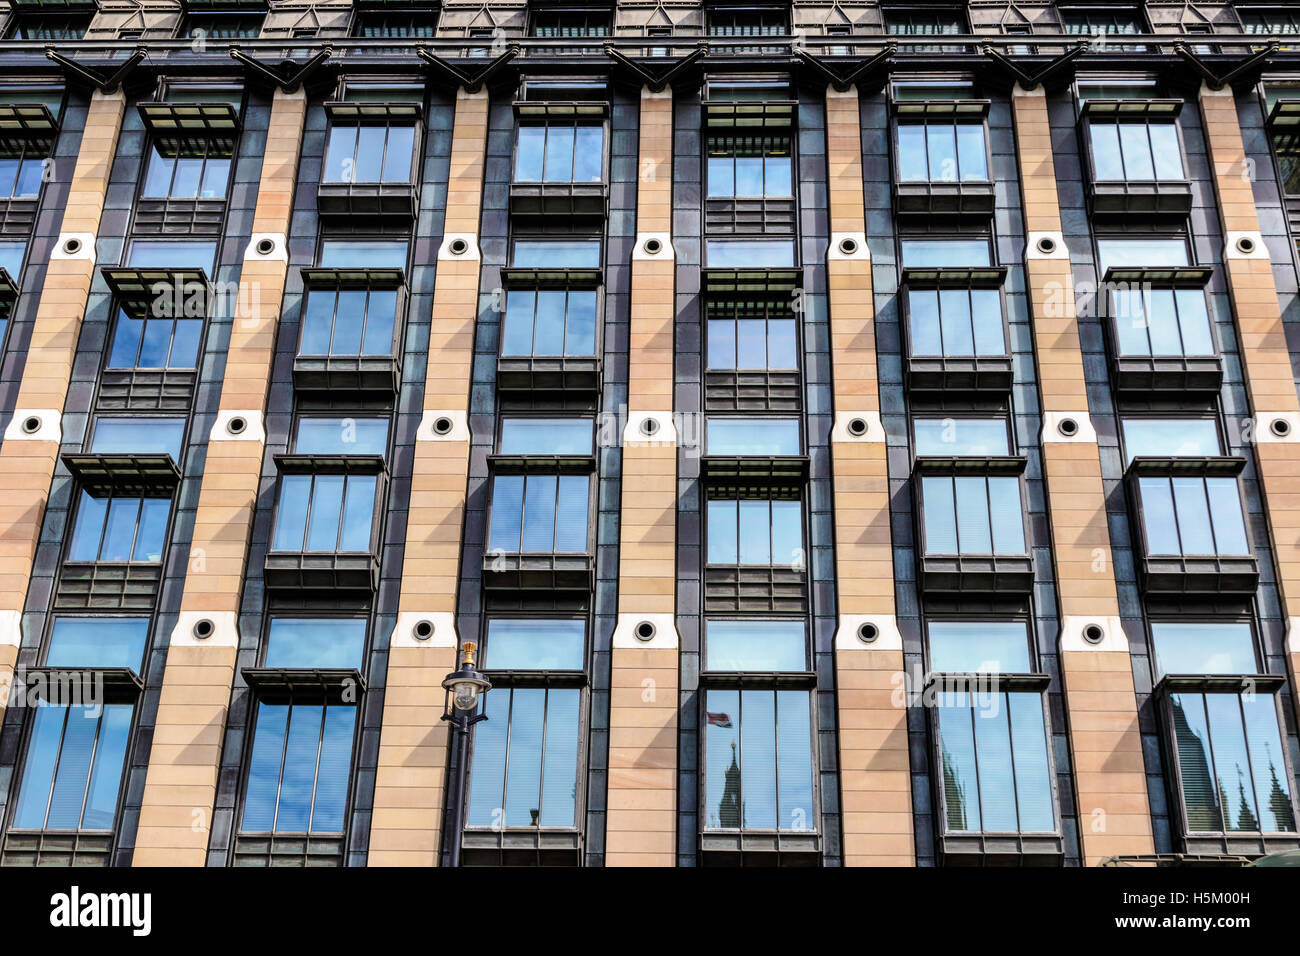 Architecture detail - the exterior of Portcullis House in London - Stock Image